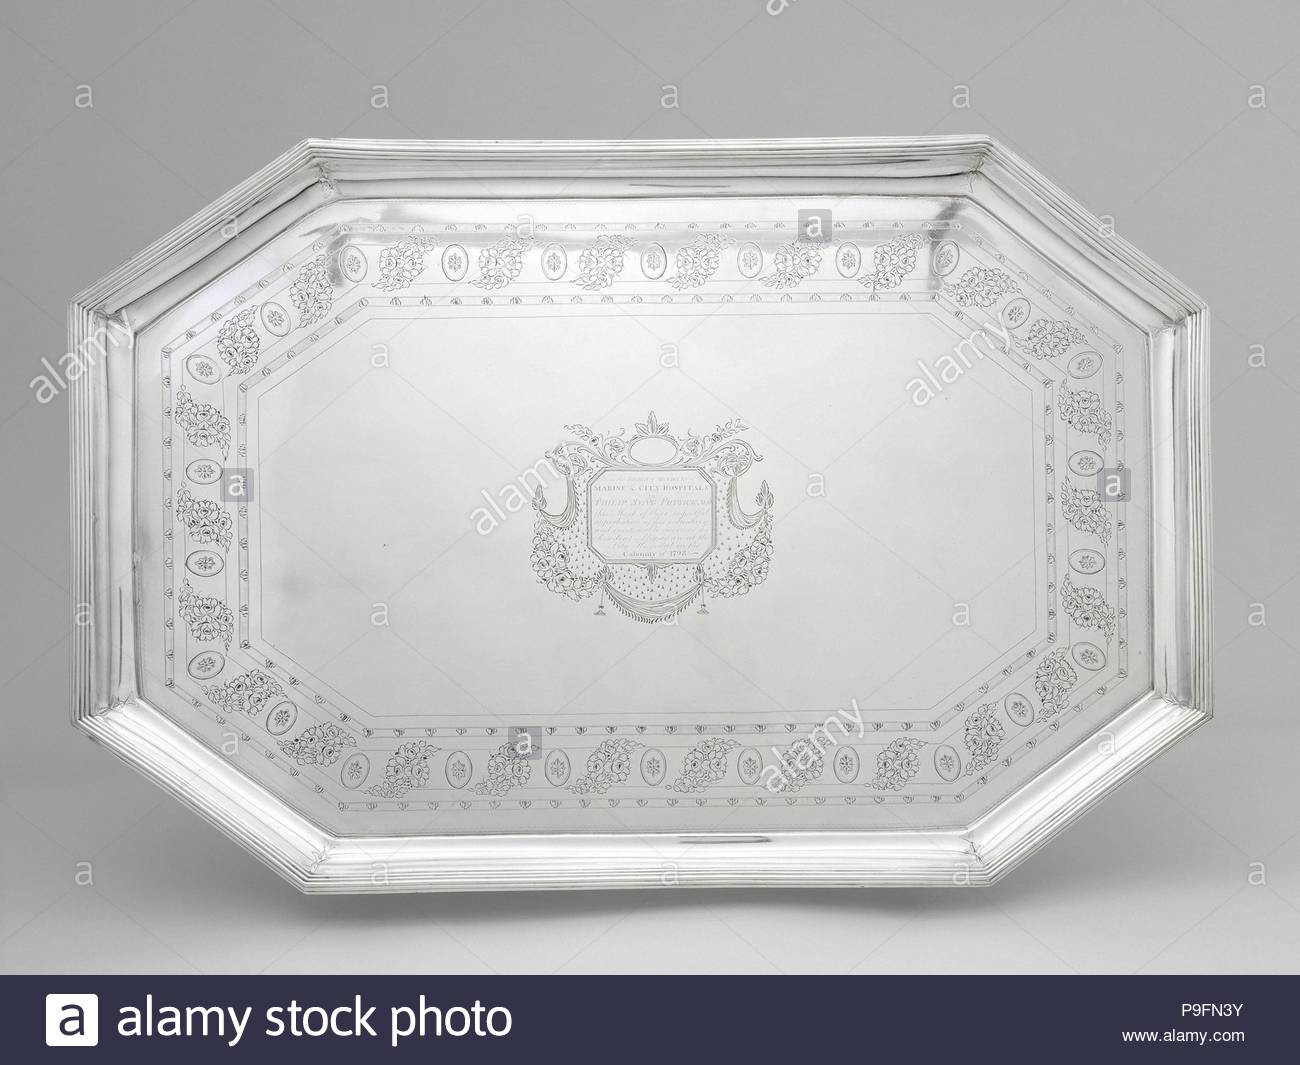 Tea Tray, 1799, Made in Philadelphia, Pennsylvania, United States, American, silver, 20 x 30 1/2 in., 174 Troy Ounces (50.8 x 77.5 cm, 5443 Grams), Silver, John McMullin (1765–1843), The yellow fever epidemics of 1793 and 1798 devastated the city of Philadelphia, killing thousands and forcing many to flee what was then the nation's capital and largest city. Among those who remained behind to tend the stricken was Dr. - Stock Image